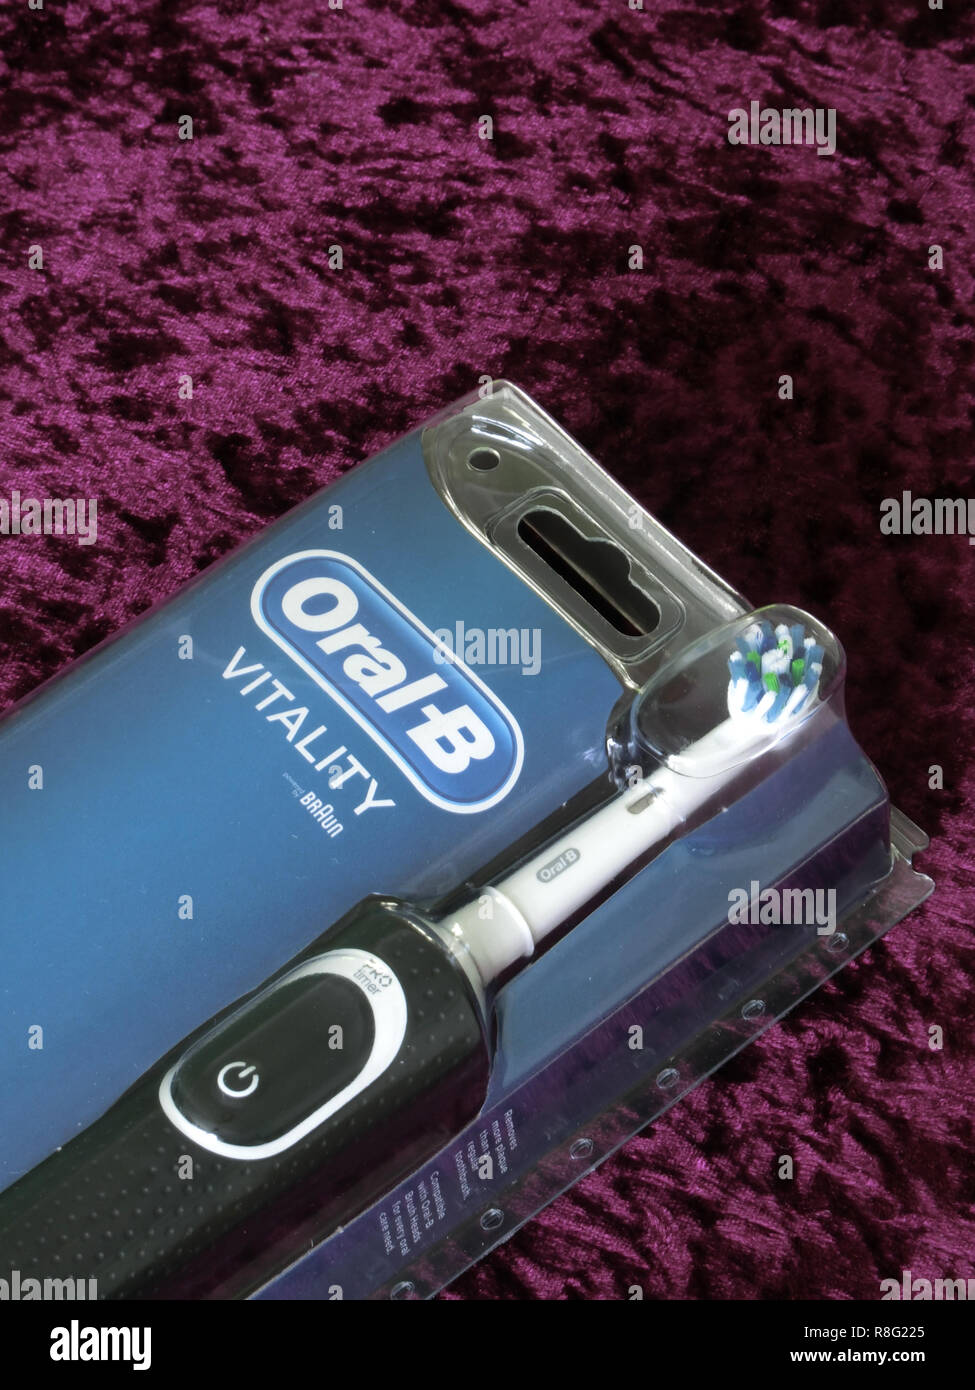 Oral-B Vitality brosse à dents électrique Photo Stock